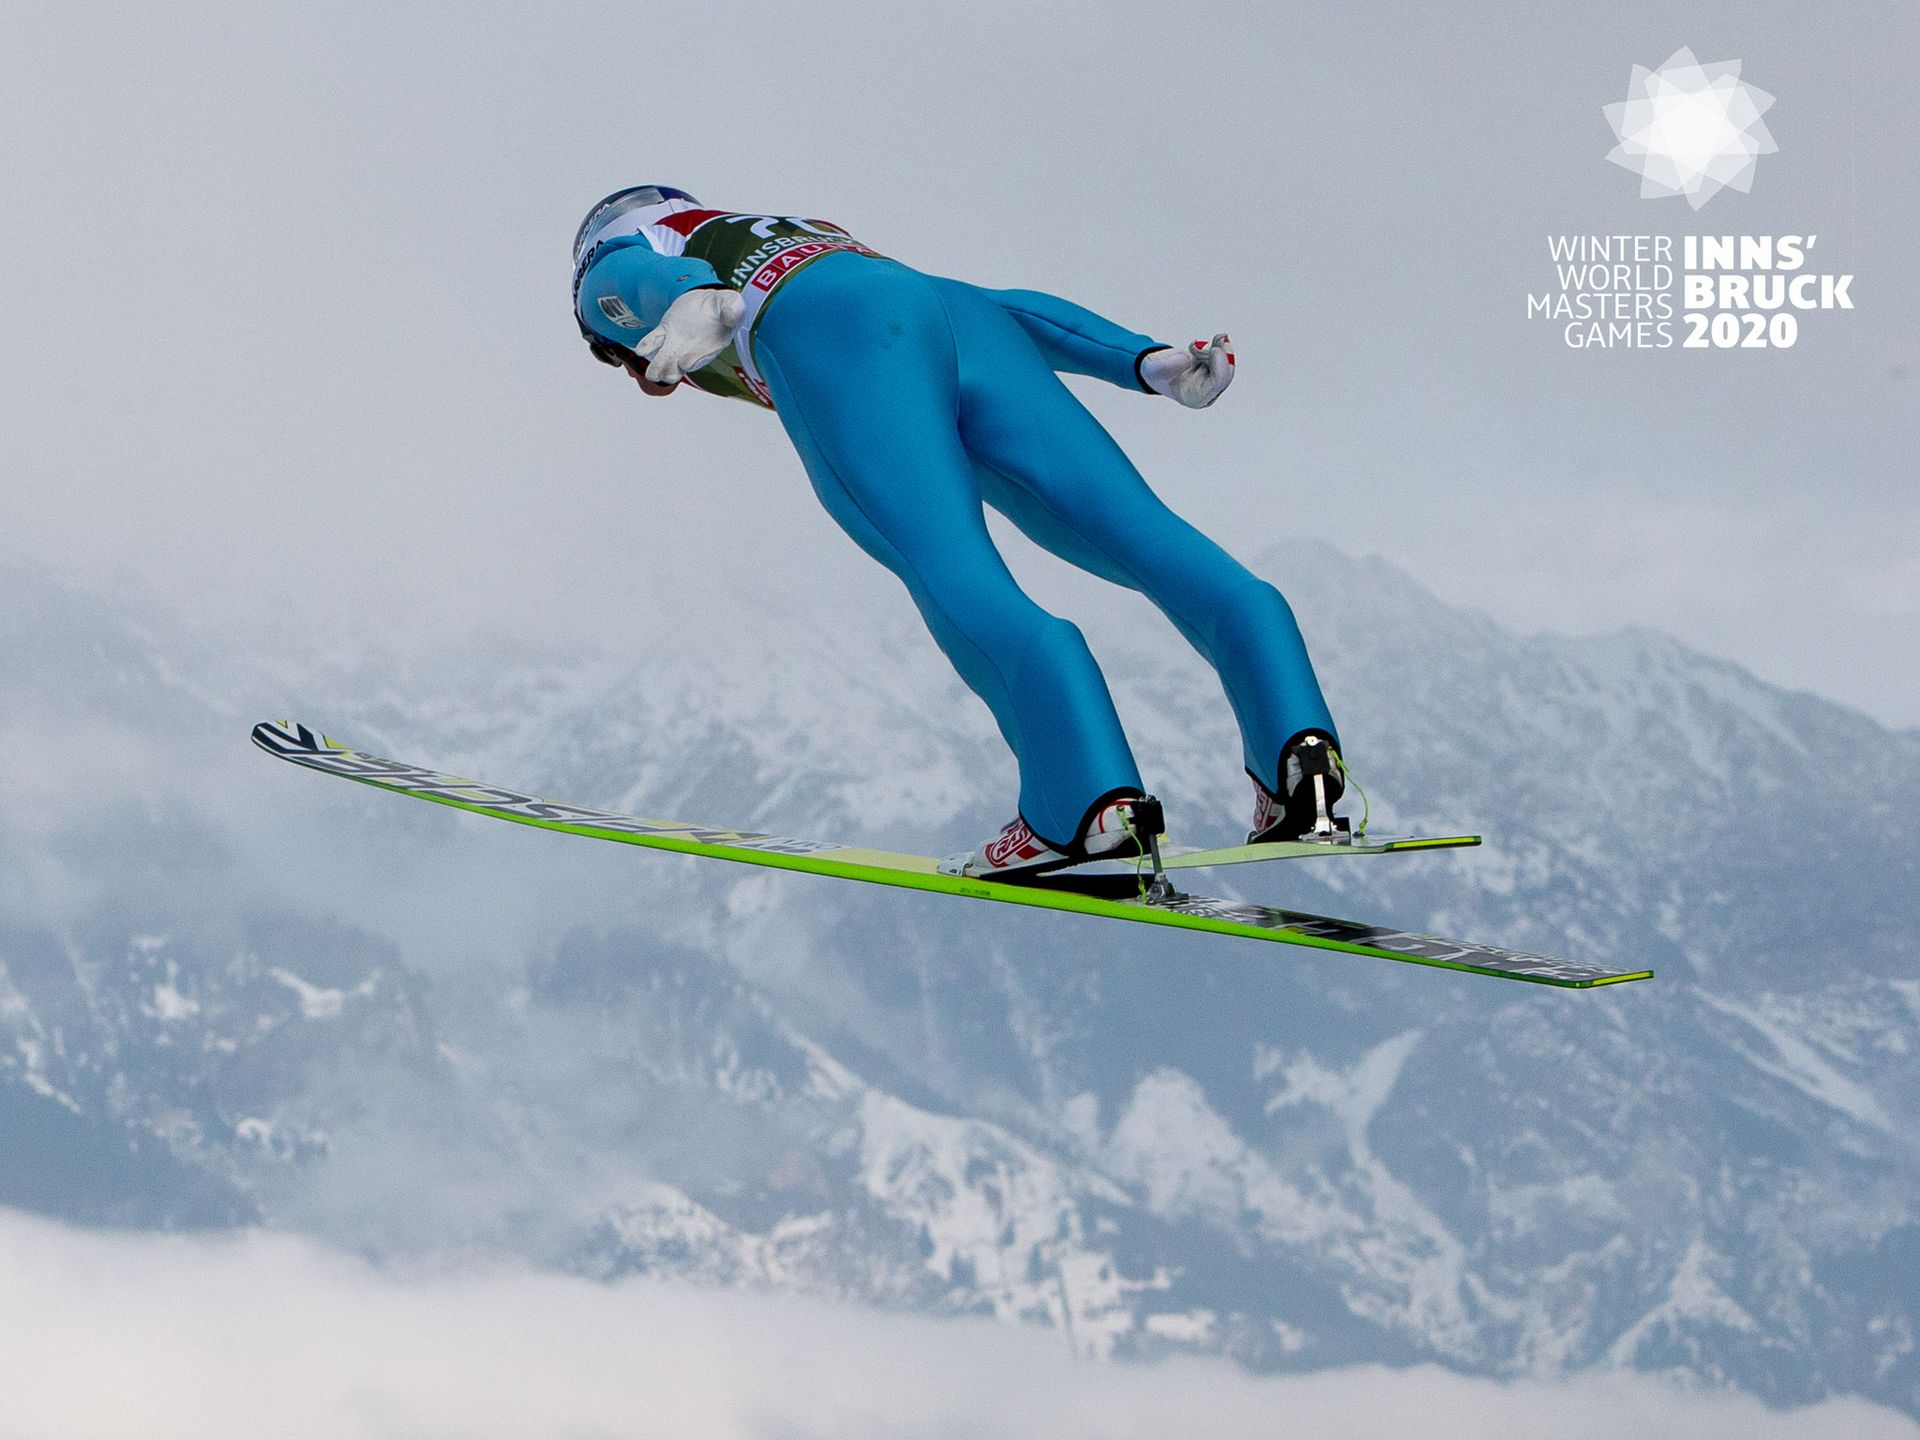 Calendario Sci Di Fondo 2020.Winter World Master Games 2020 La Regione Di Innsbruck